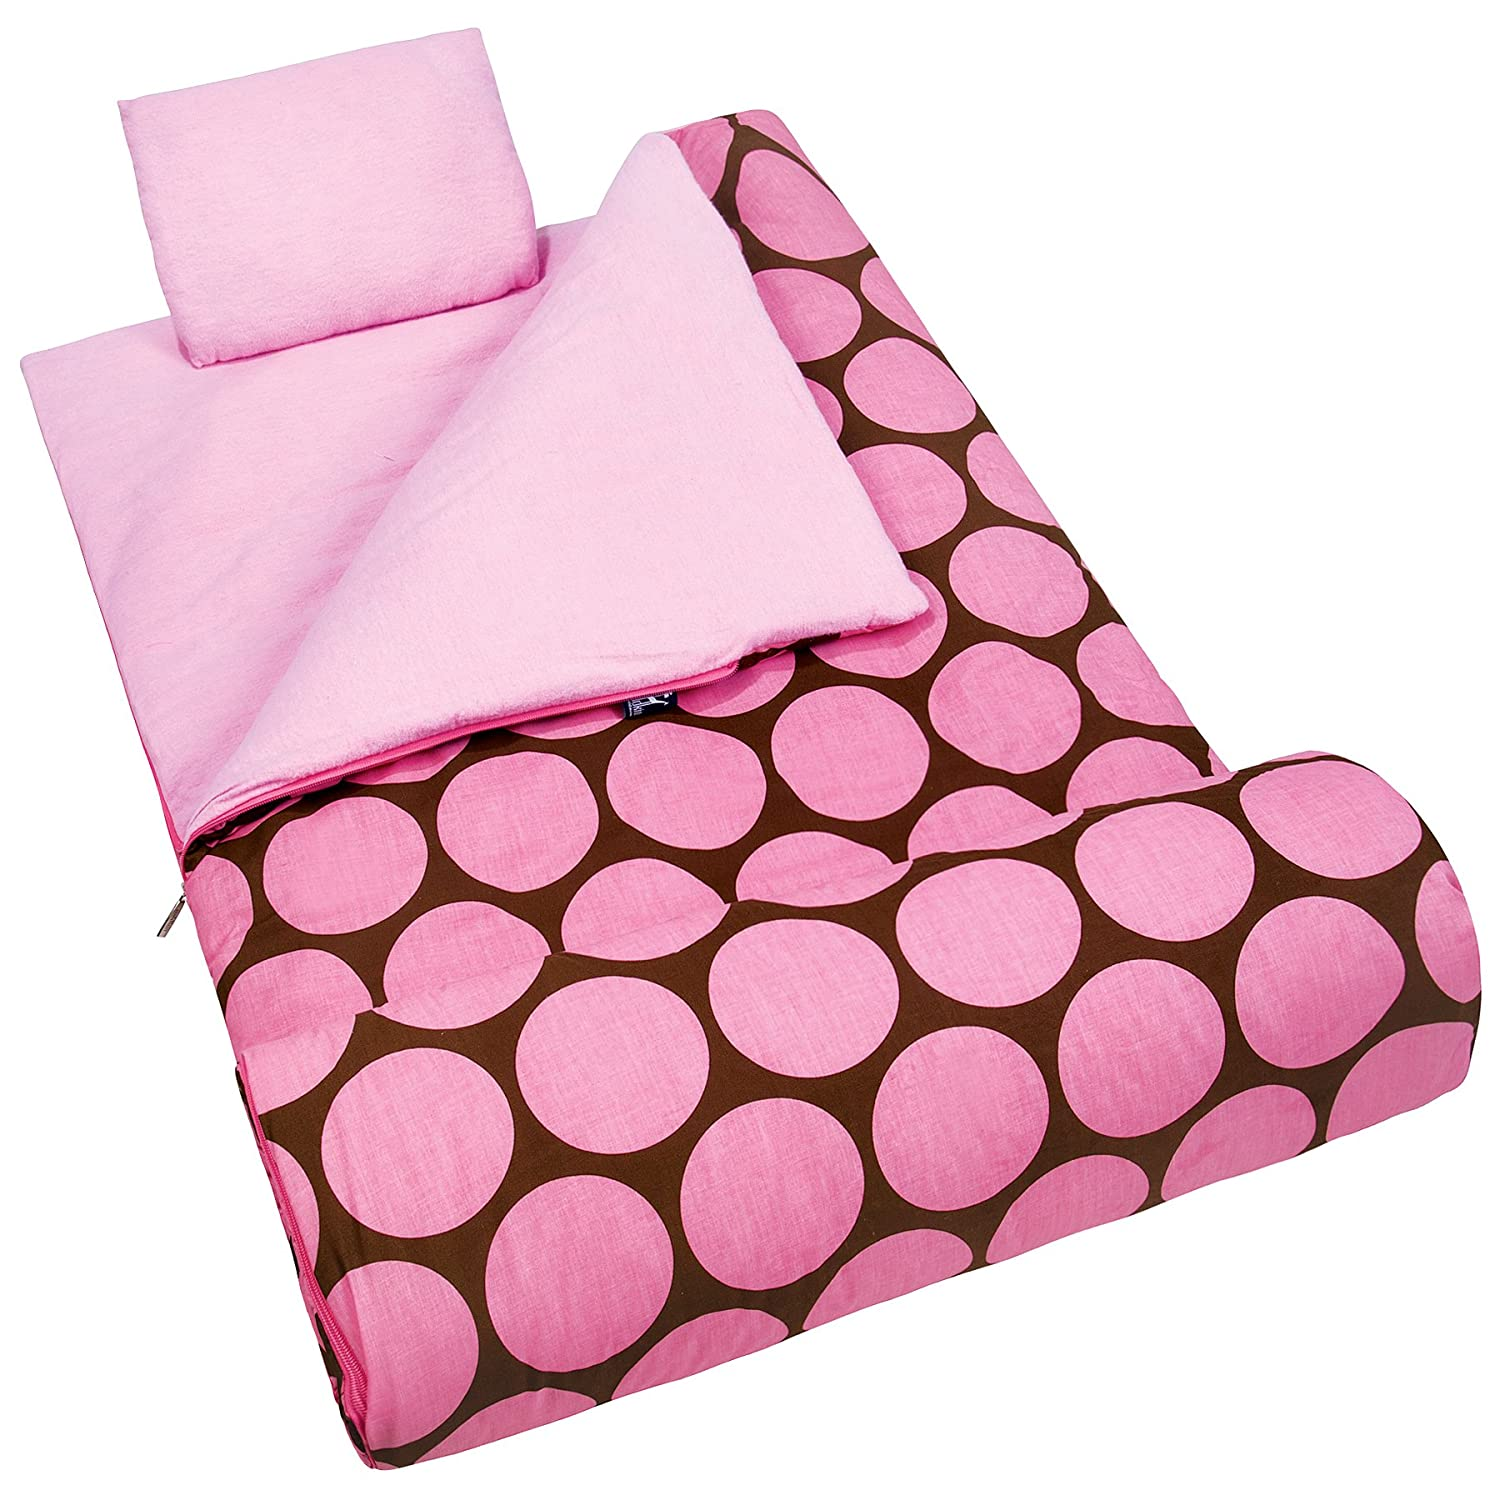 Wildkin Kids Sleeping Bag Nap Mat Slumber Big Dot Pink Amazoncouk Toys Games